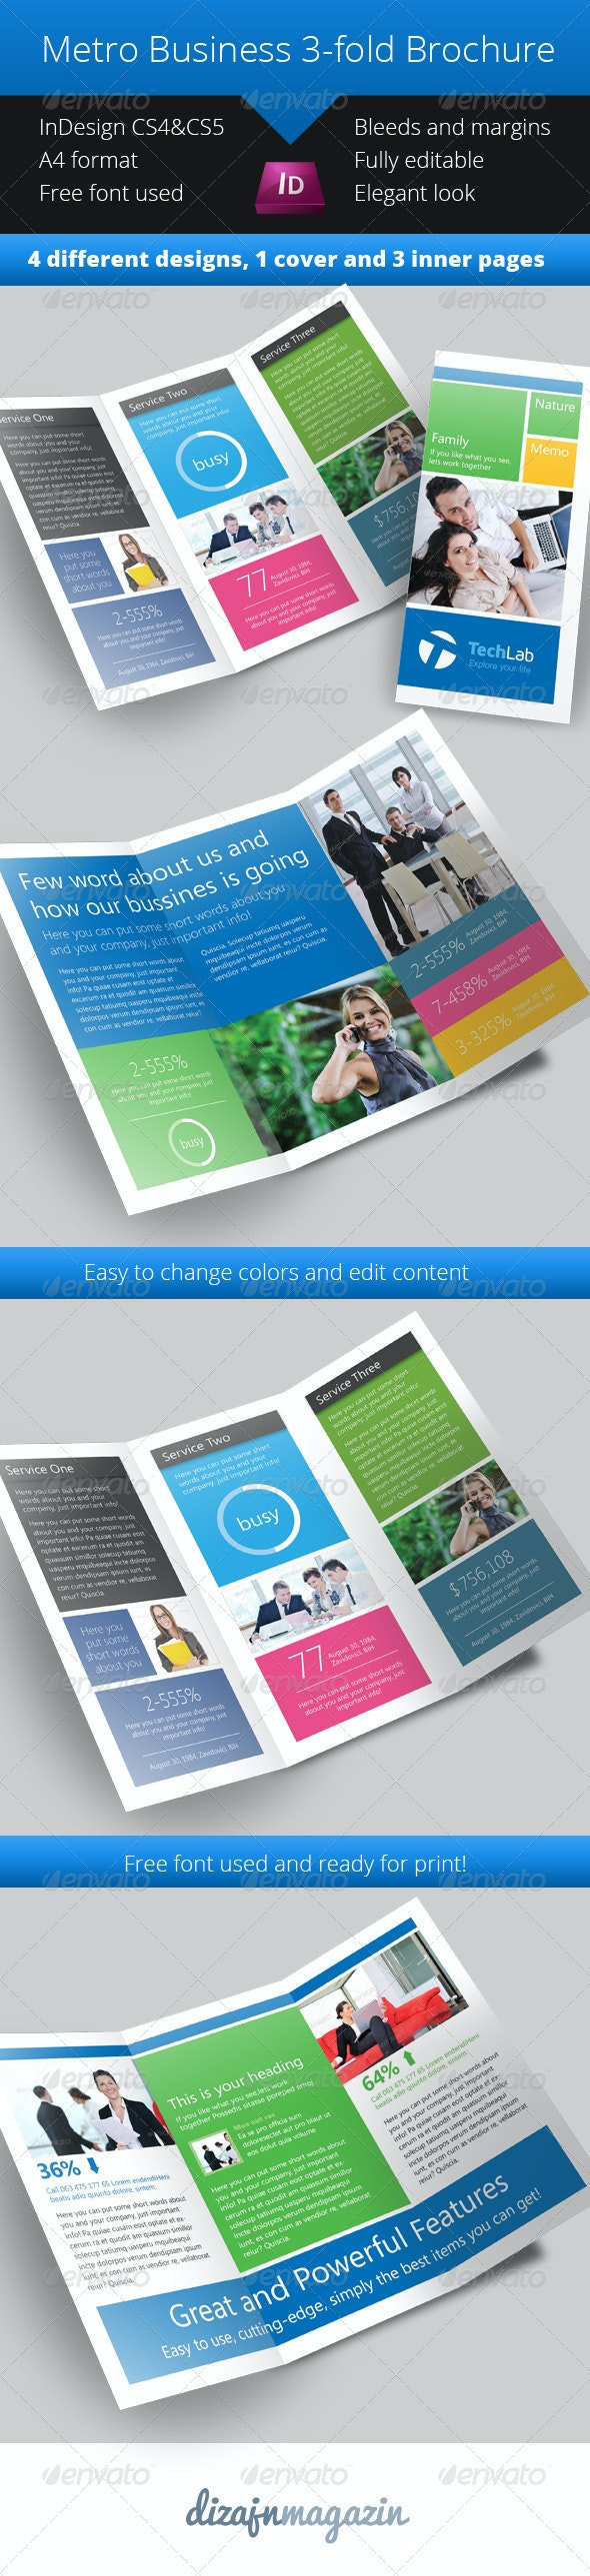 Metro 3-fold Brochure - InDesign Template - Corporate Brochures